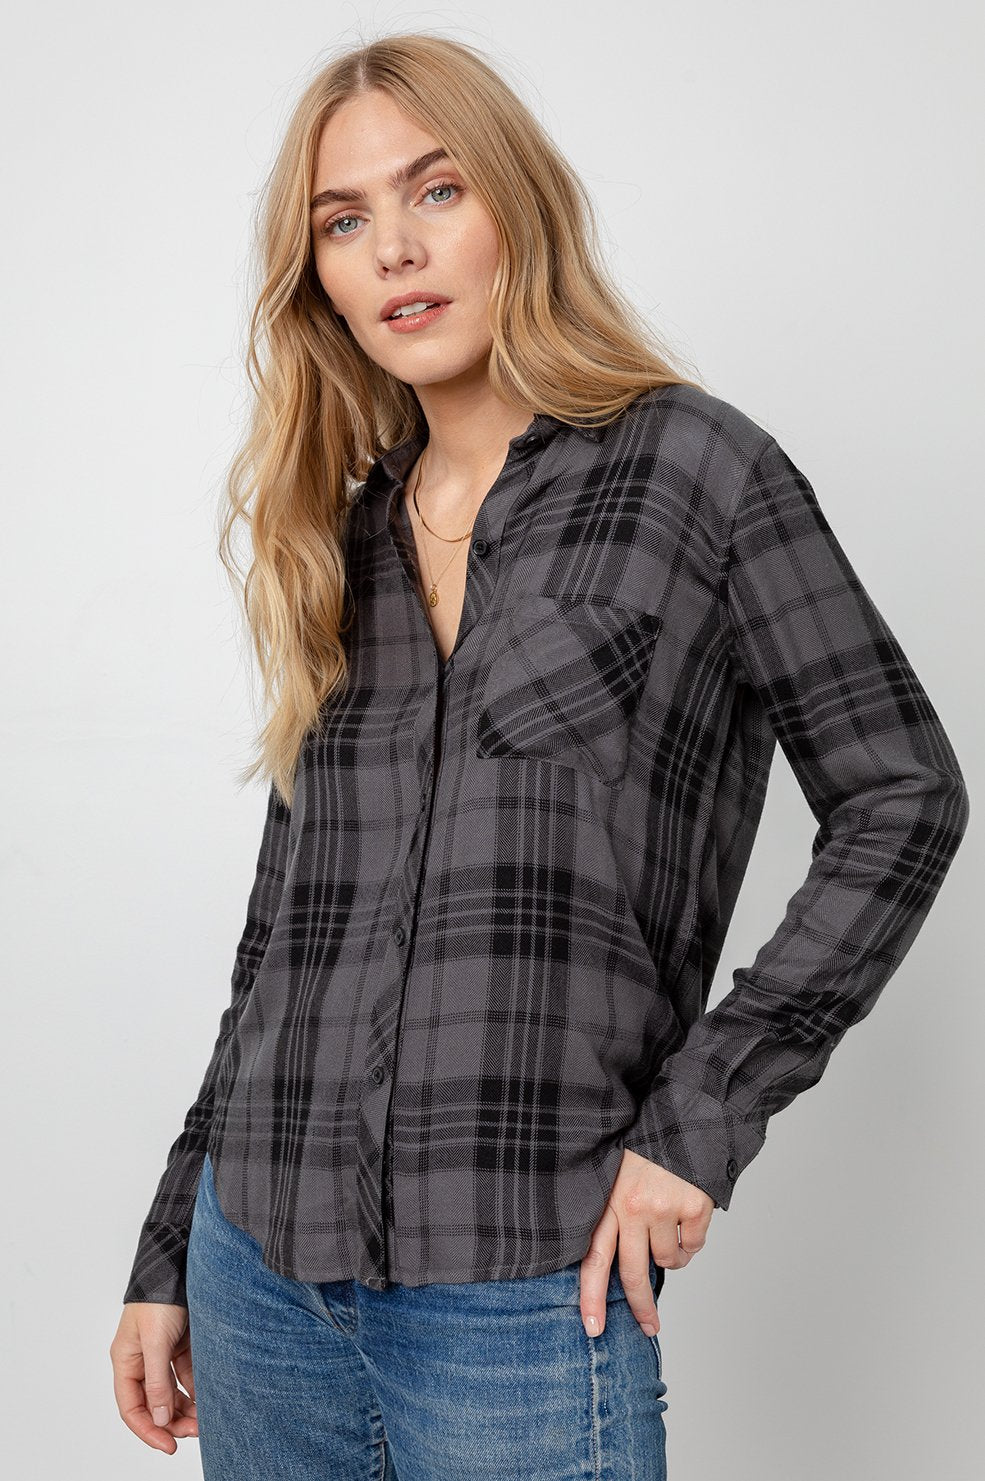 Hunter Plaid Shirt in Charcoal Jet